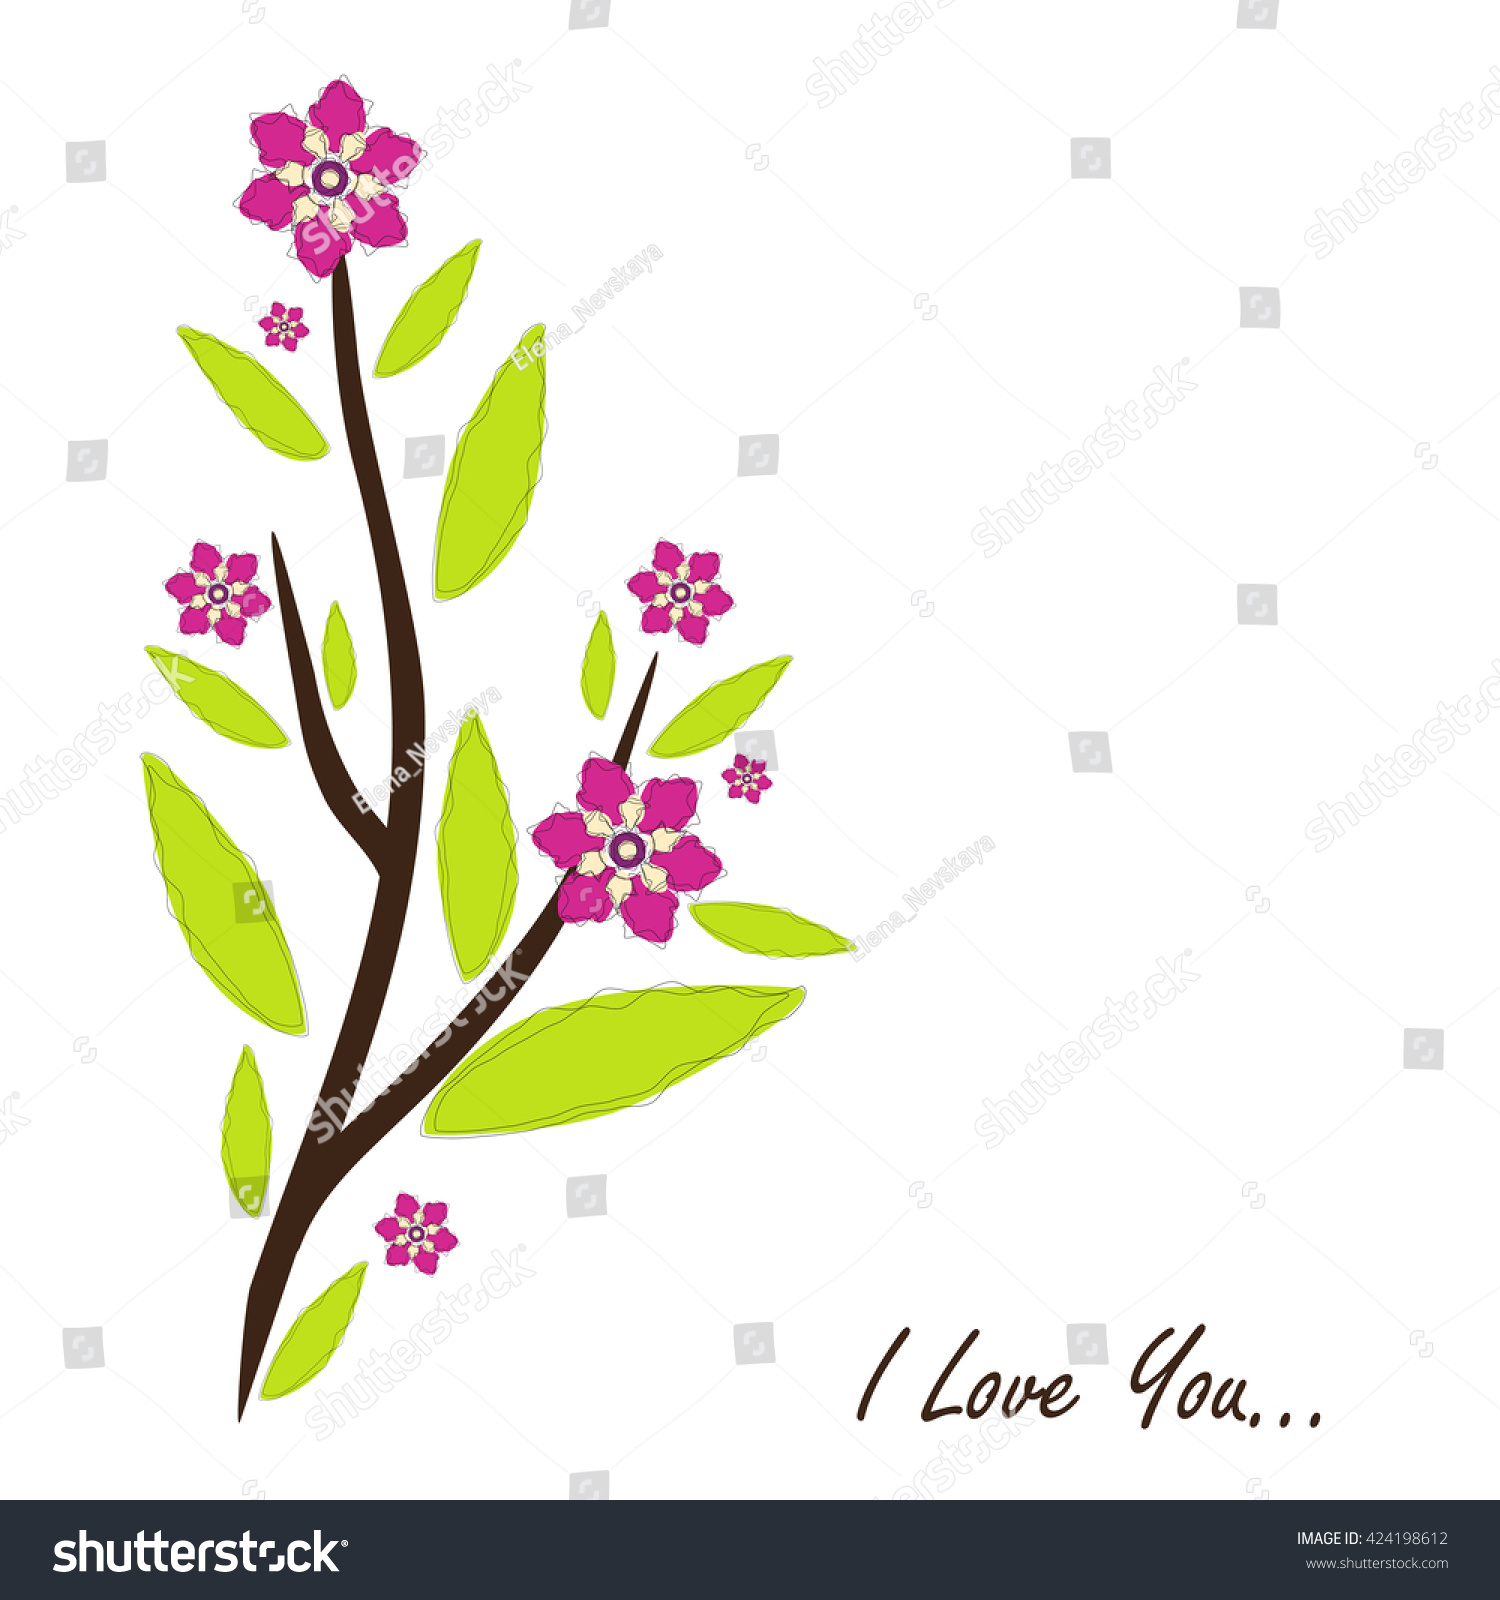 Vector Amazing Flower Design Beautiful Greeting Card With Romantic